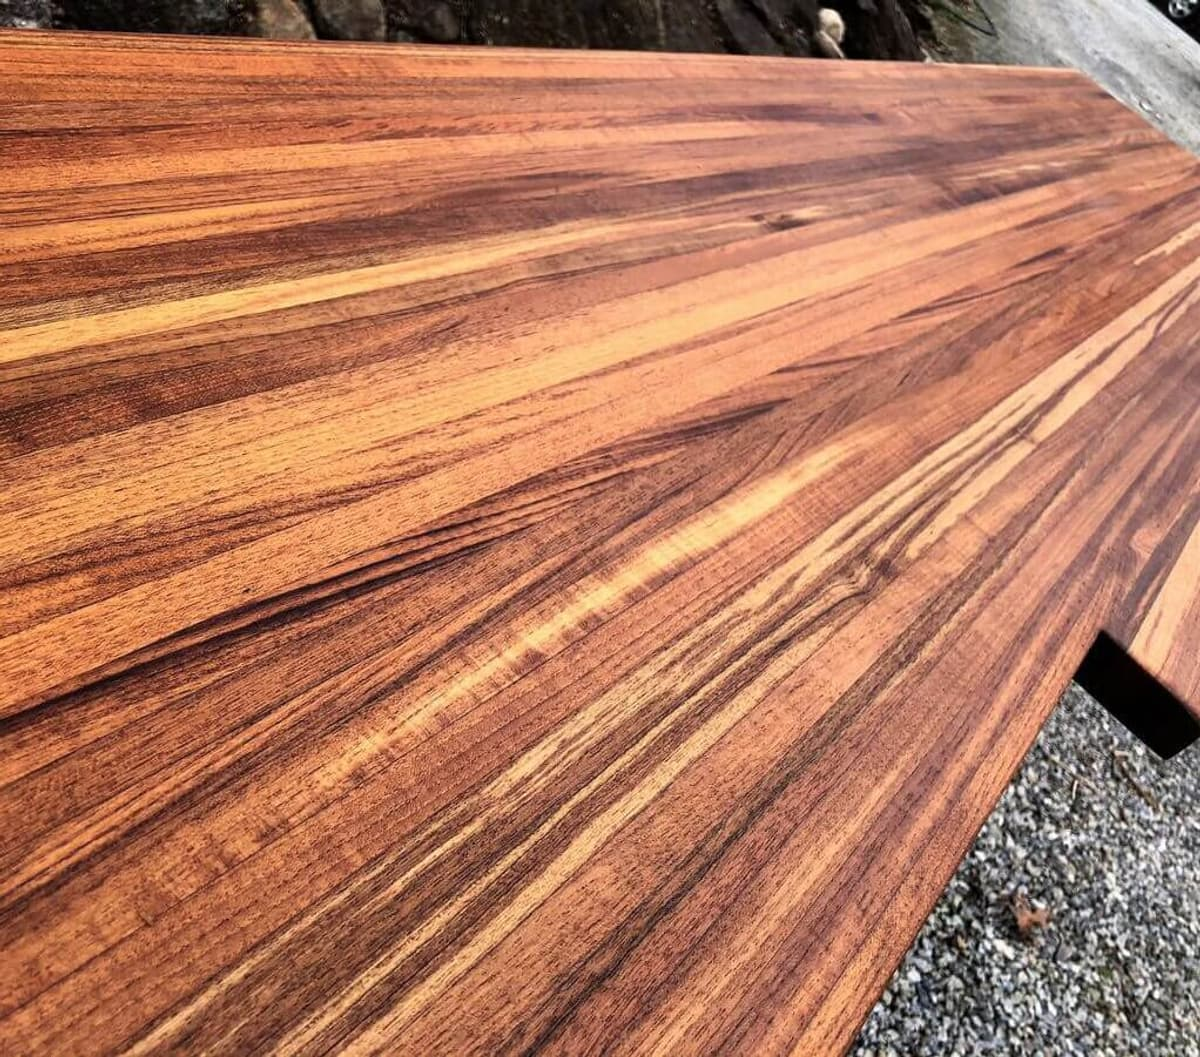 Reclaimed antique Teak butcher block counter top ready for installation.